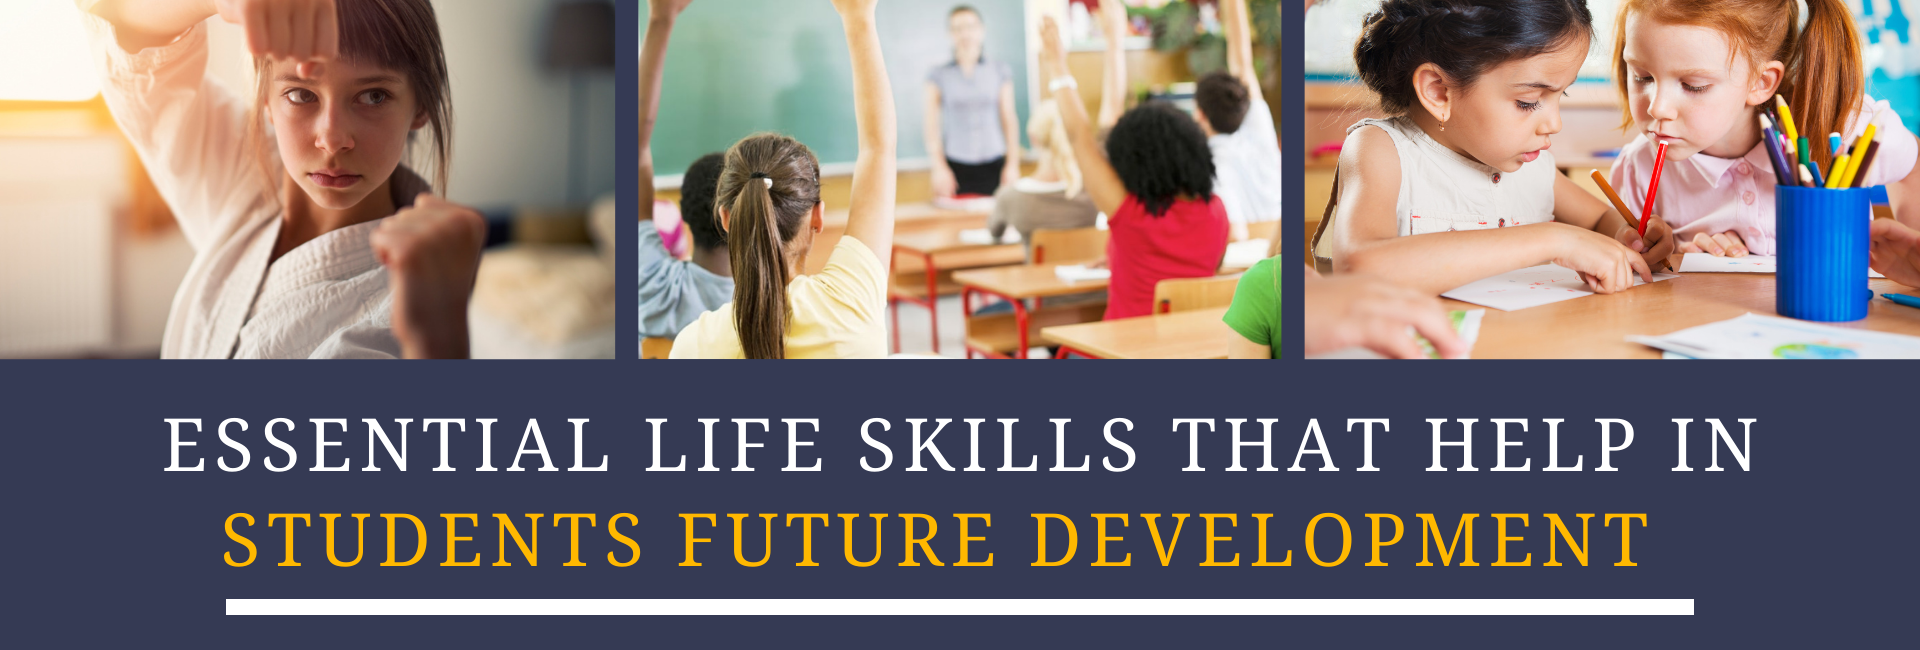 Essential Life Skills That Help In Students Future Development -featured image